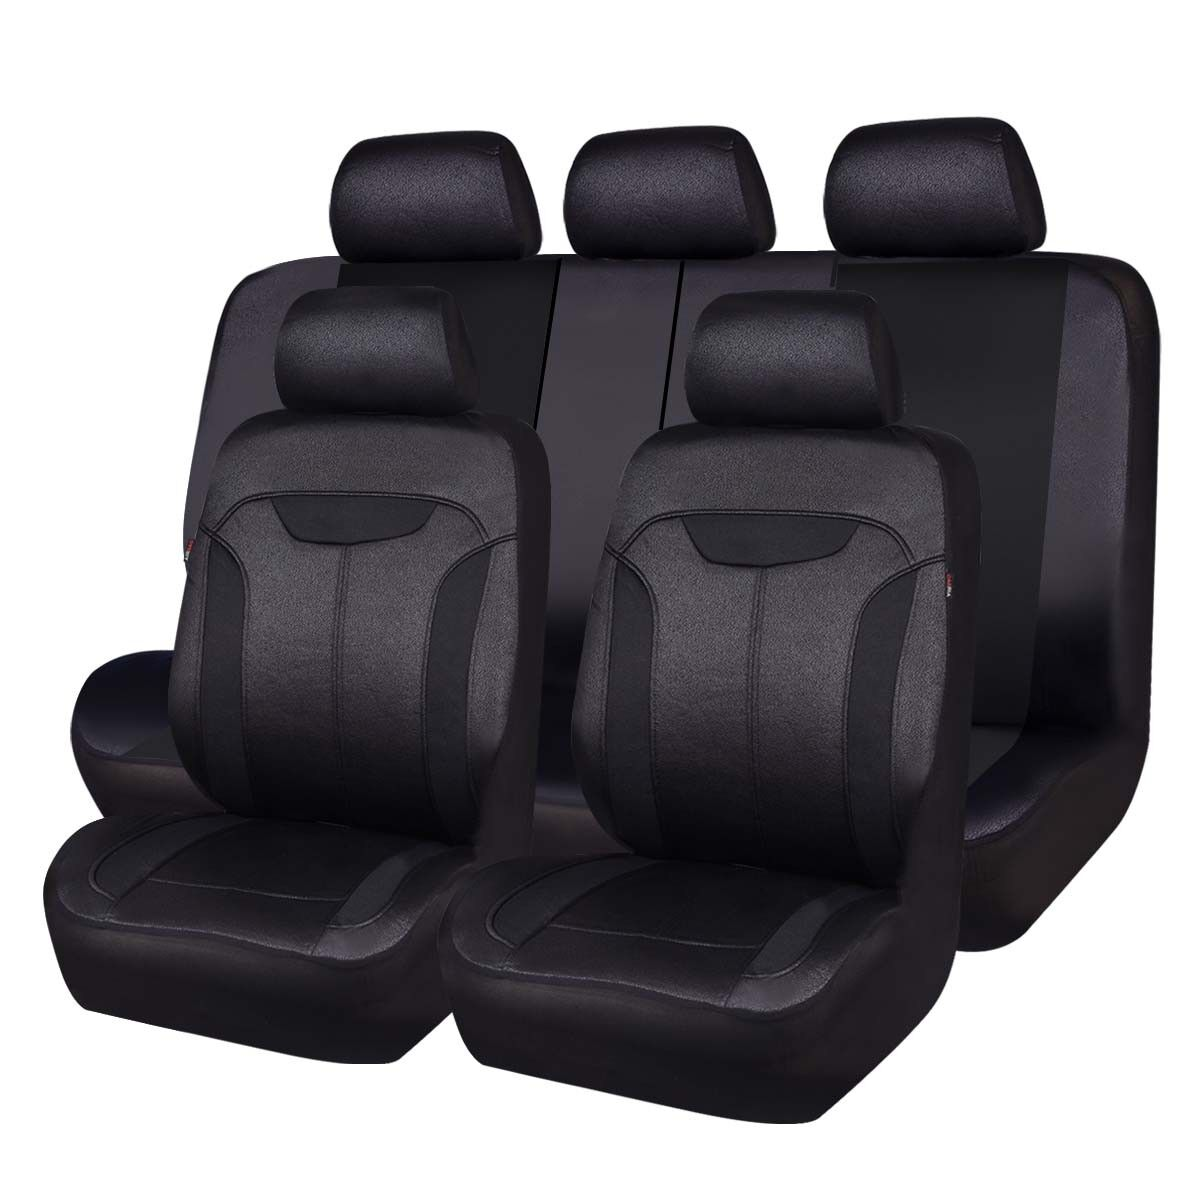 Pleasing Details About Carpass Car Seat Covers With Breathable Aritificial Leather Black Color Car Good Andrewgaddart Wooden Chair Designs For Living Room Andrewgaddartcom